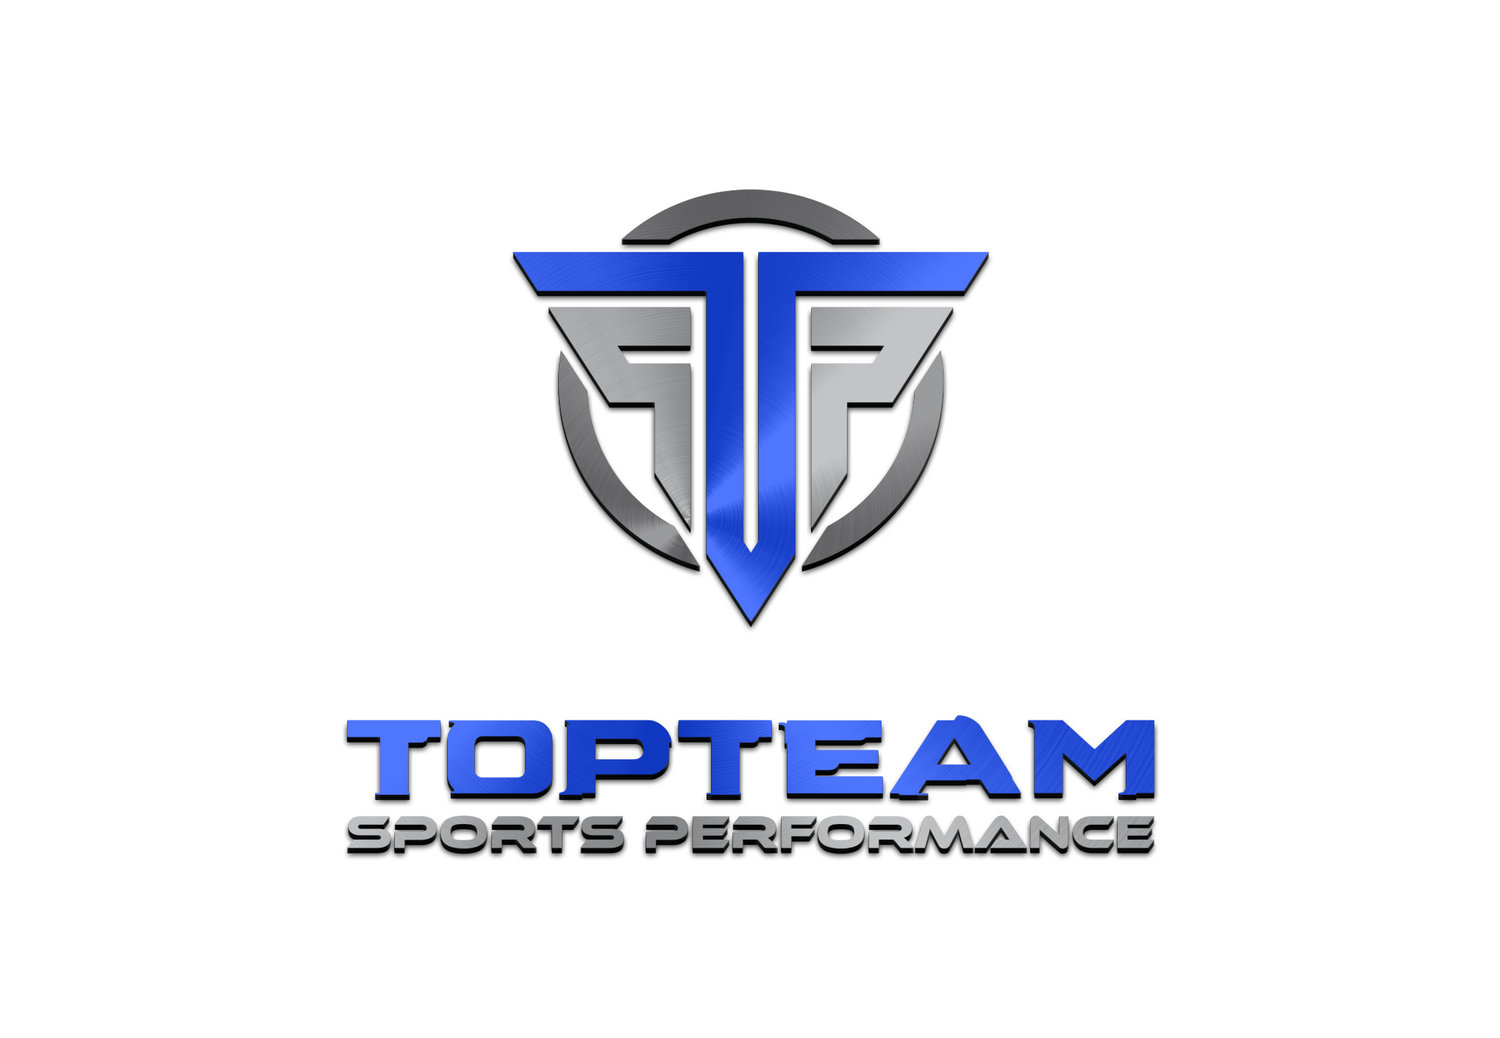 TOPTEAM Sports Performance